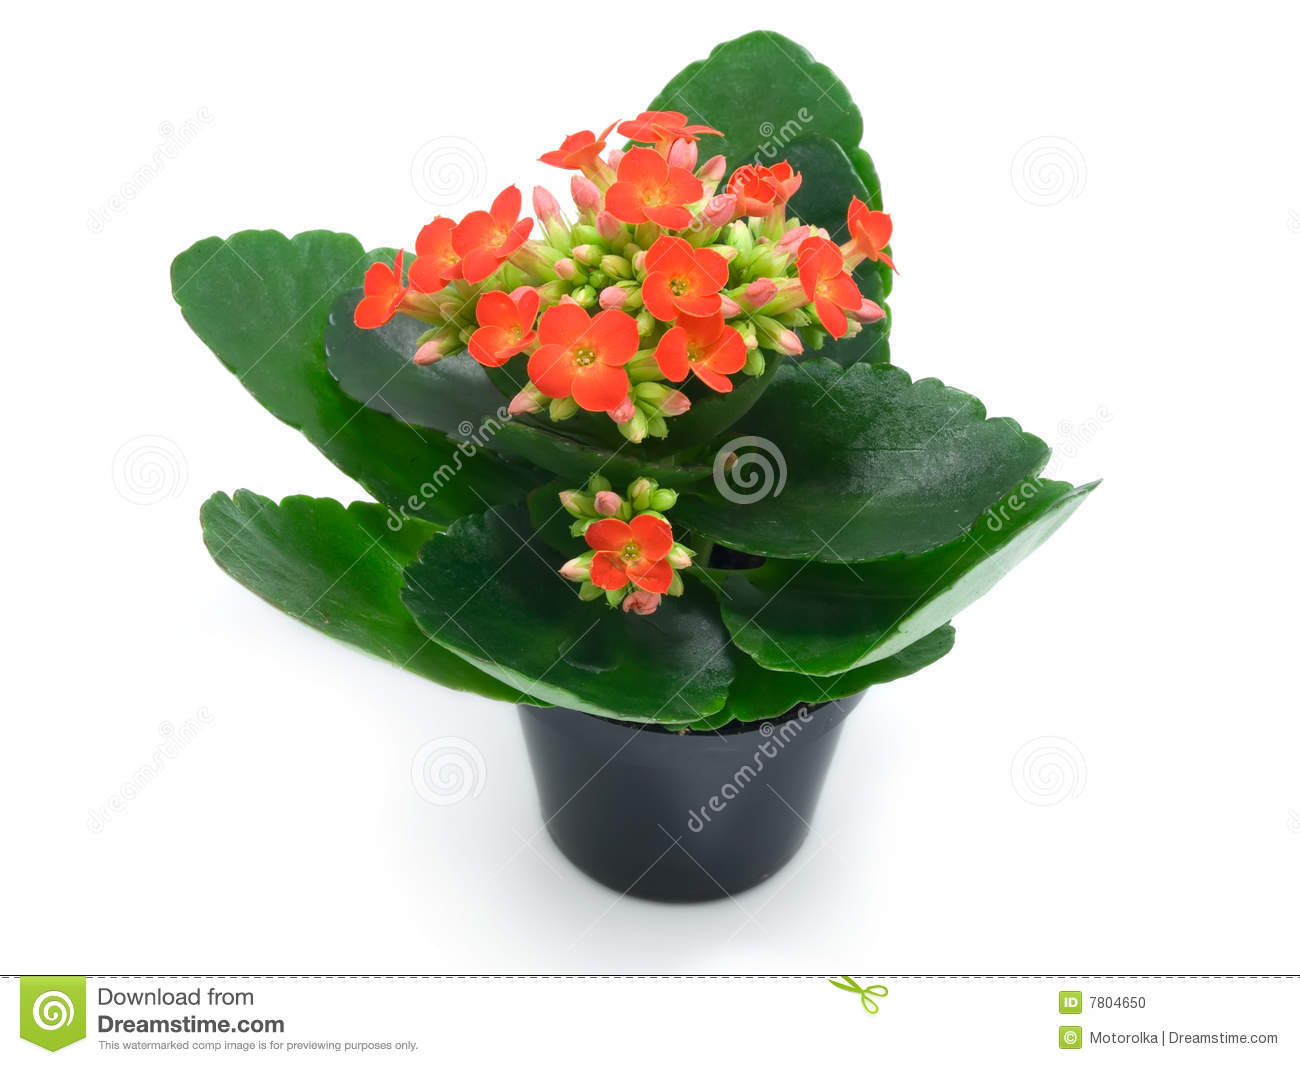 green houseplants with red flowers - Red Flowering House Plants